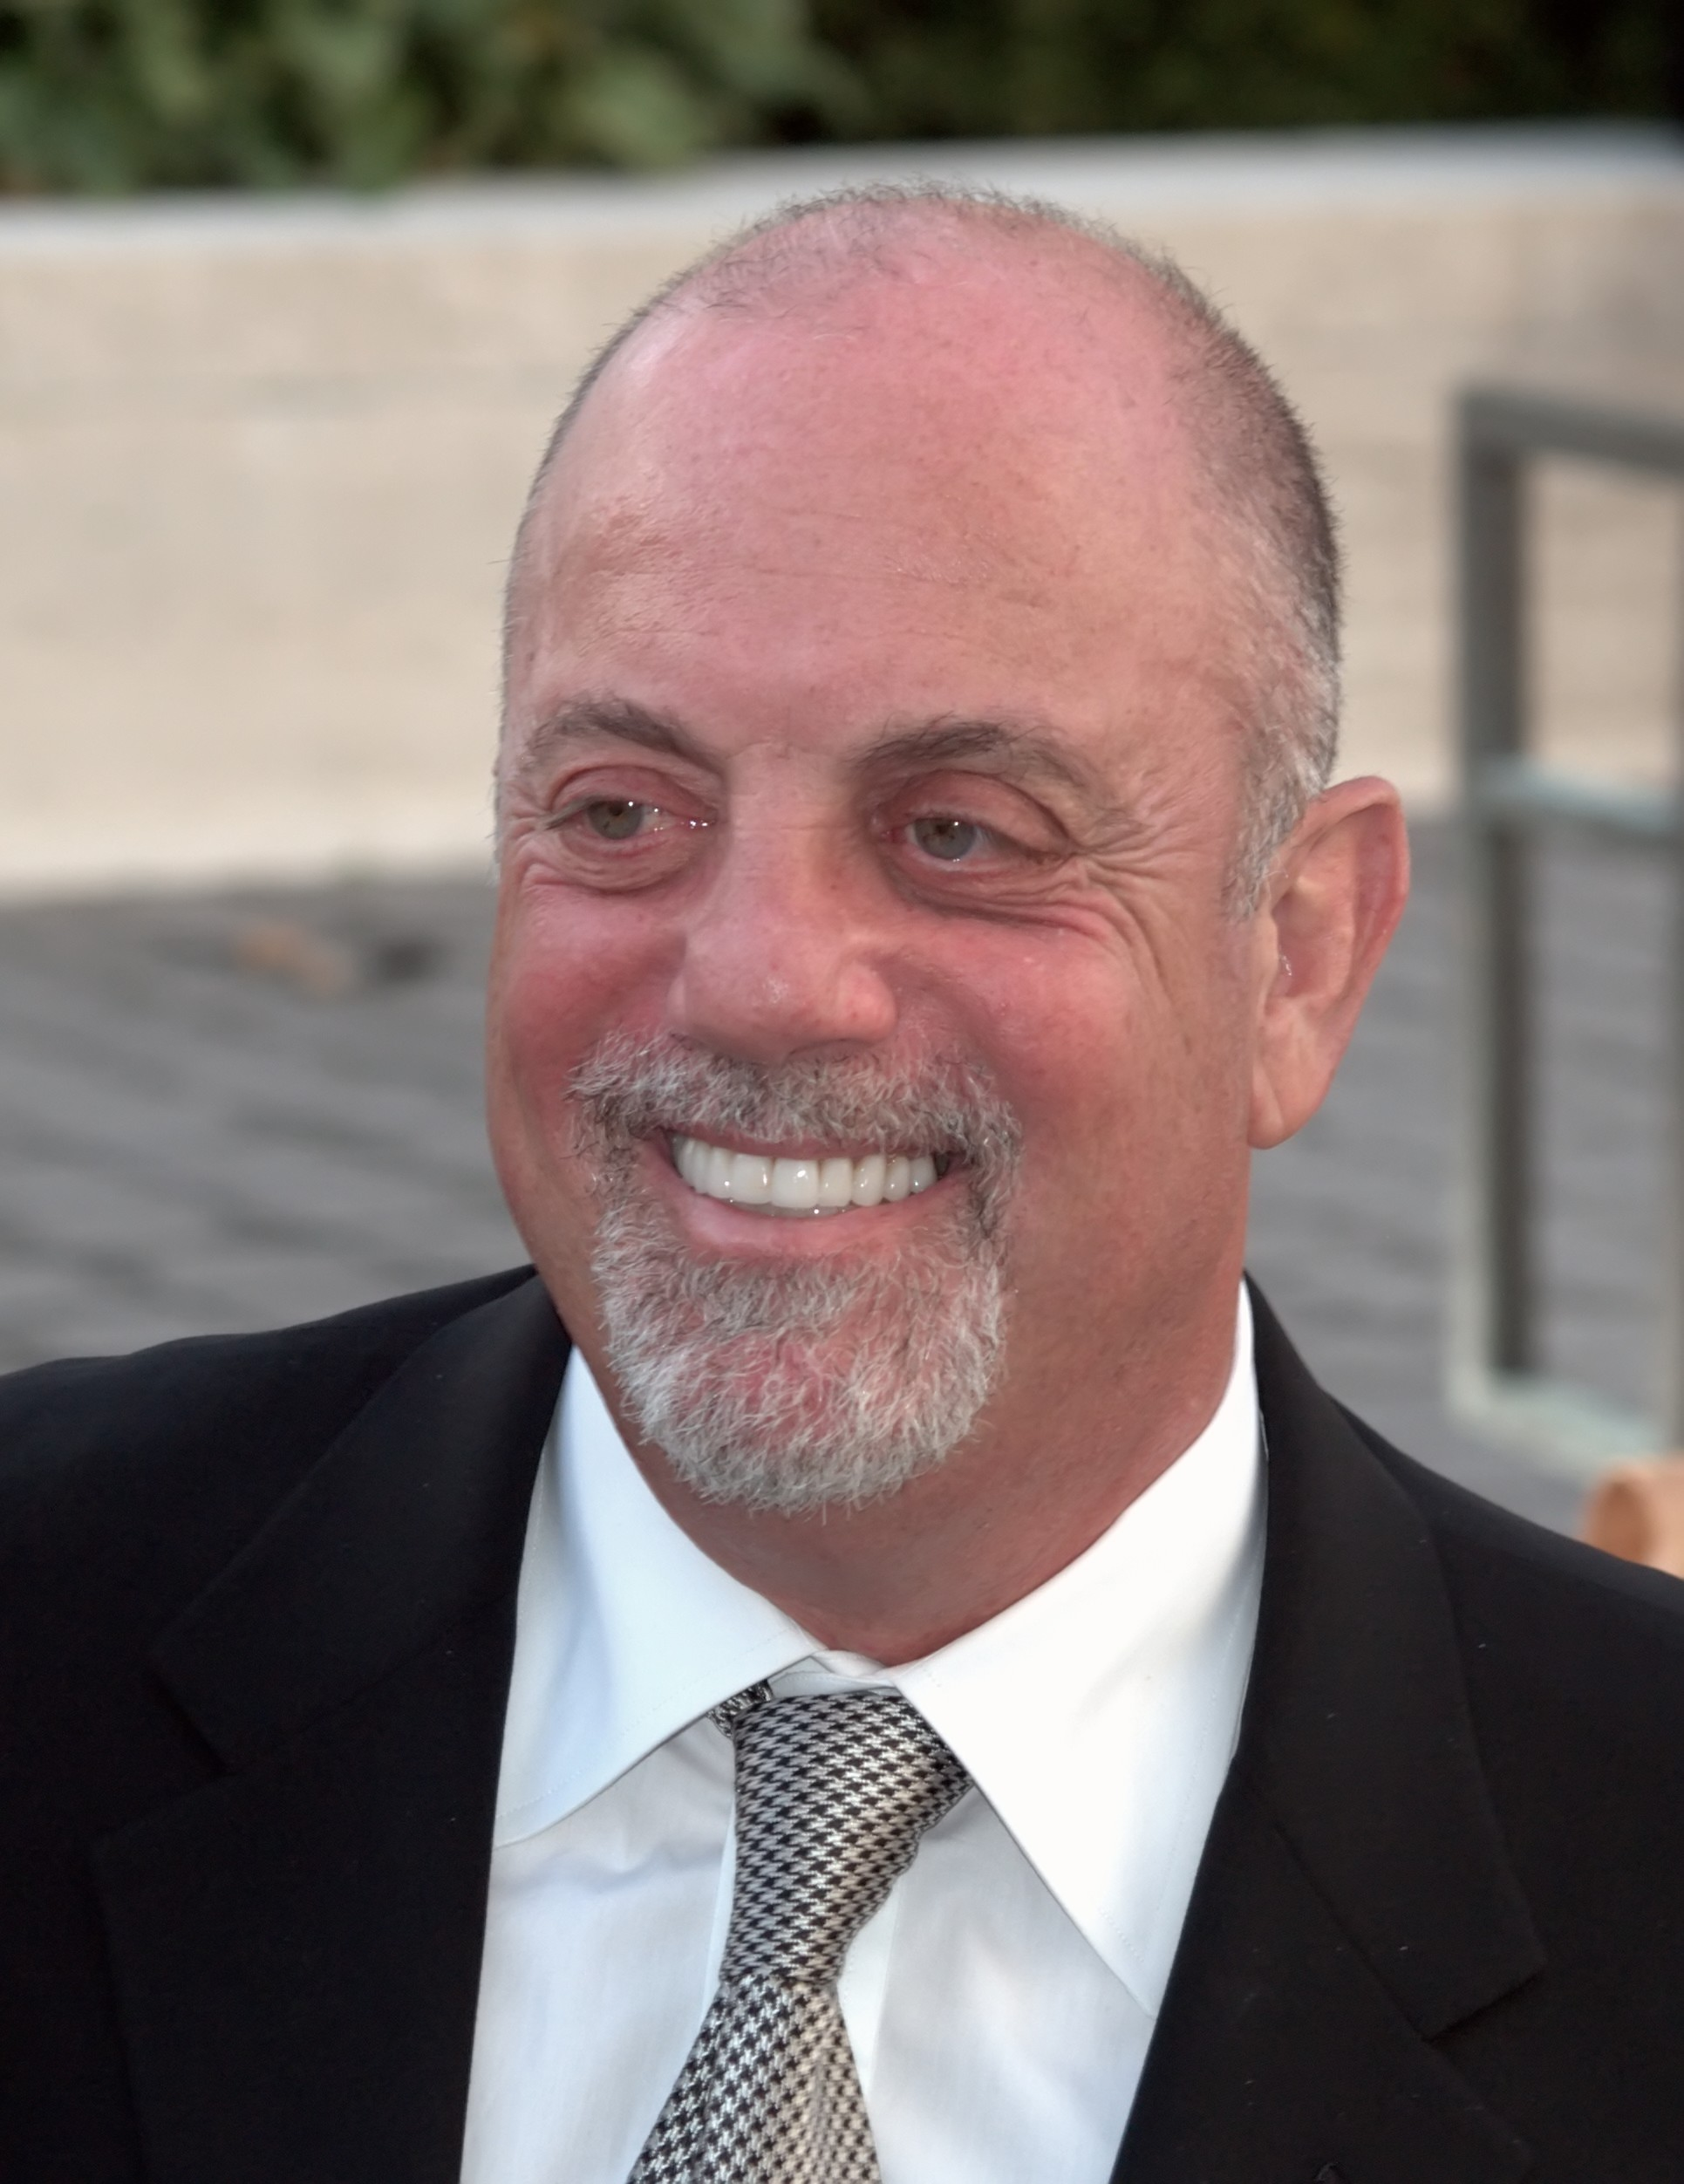 The 69-year old son of father Howard and mother(?) Billy Joel in 2019 photo. Billy Joel earned a  million dollar salary - leaving the net worth at 180 million in 2019